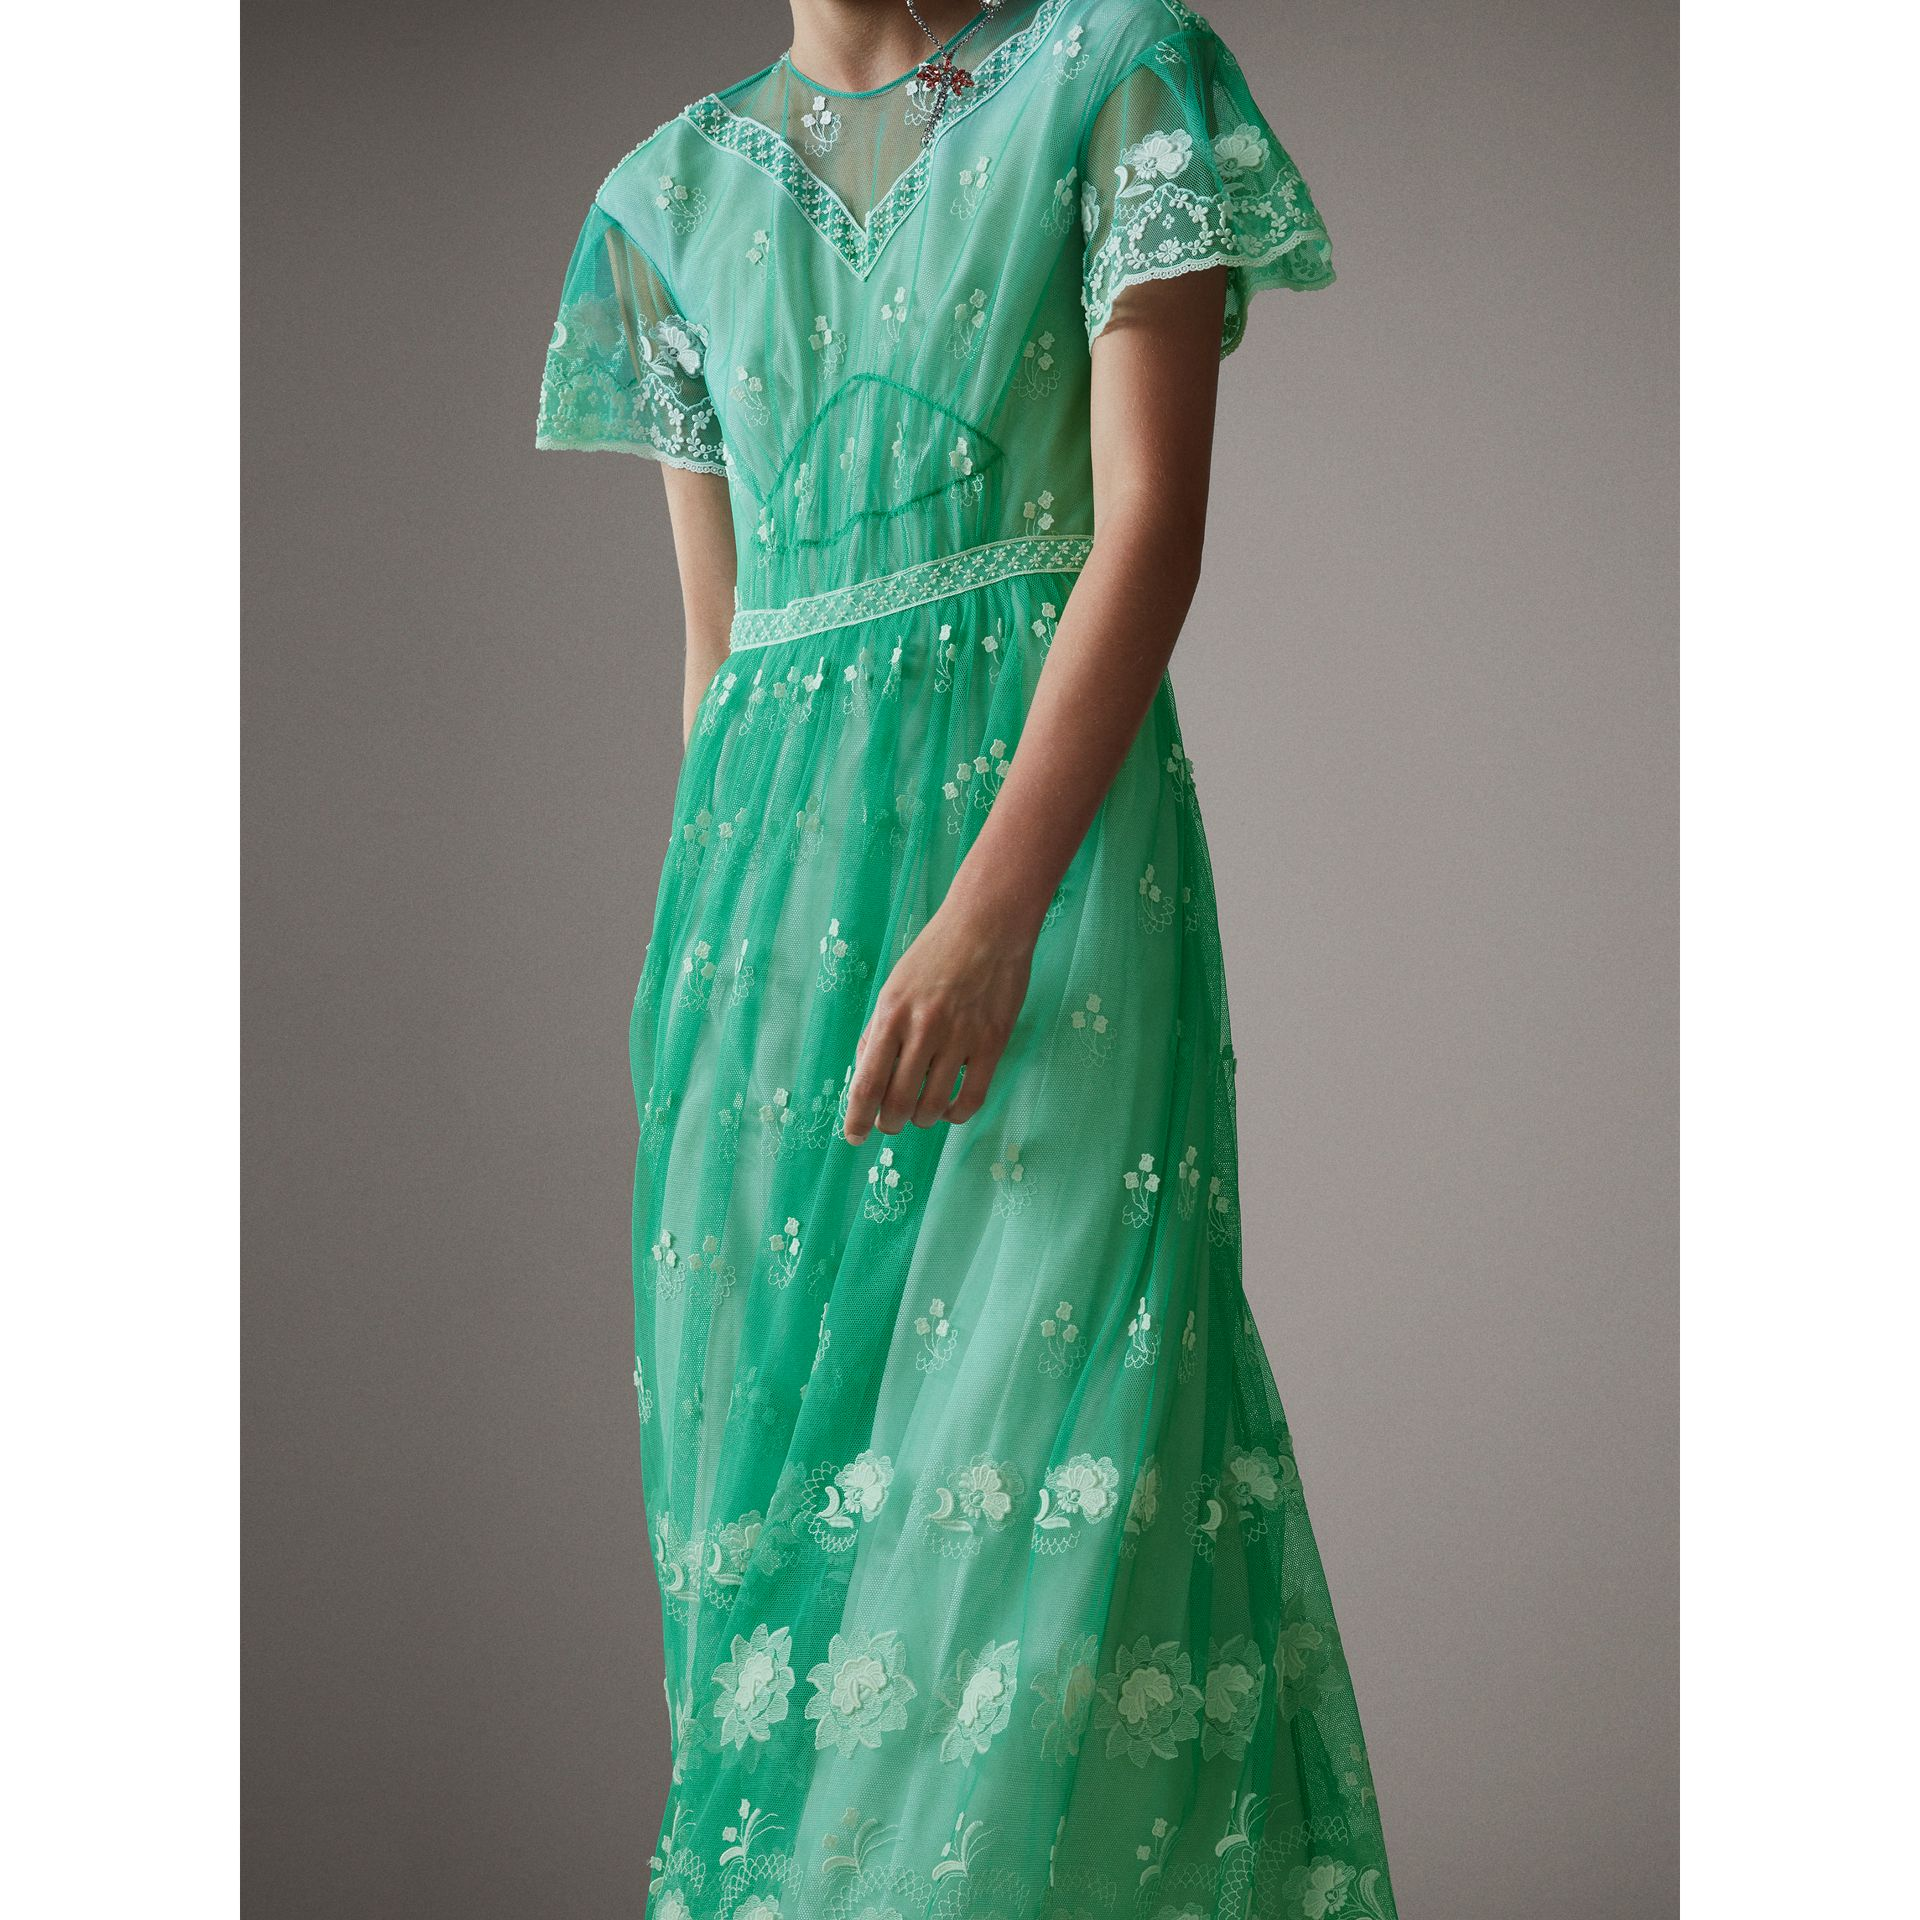 Embroidered Tulle Gathered Dress in Aqua Green/white - Women | Burberry United States - gallery image 1